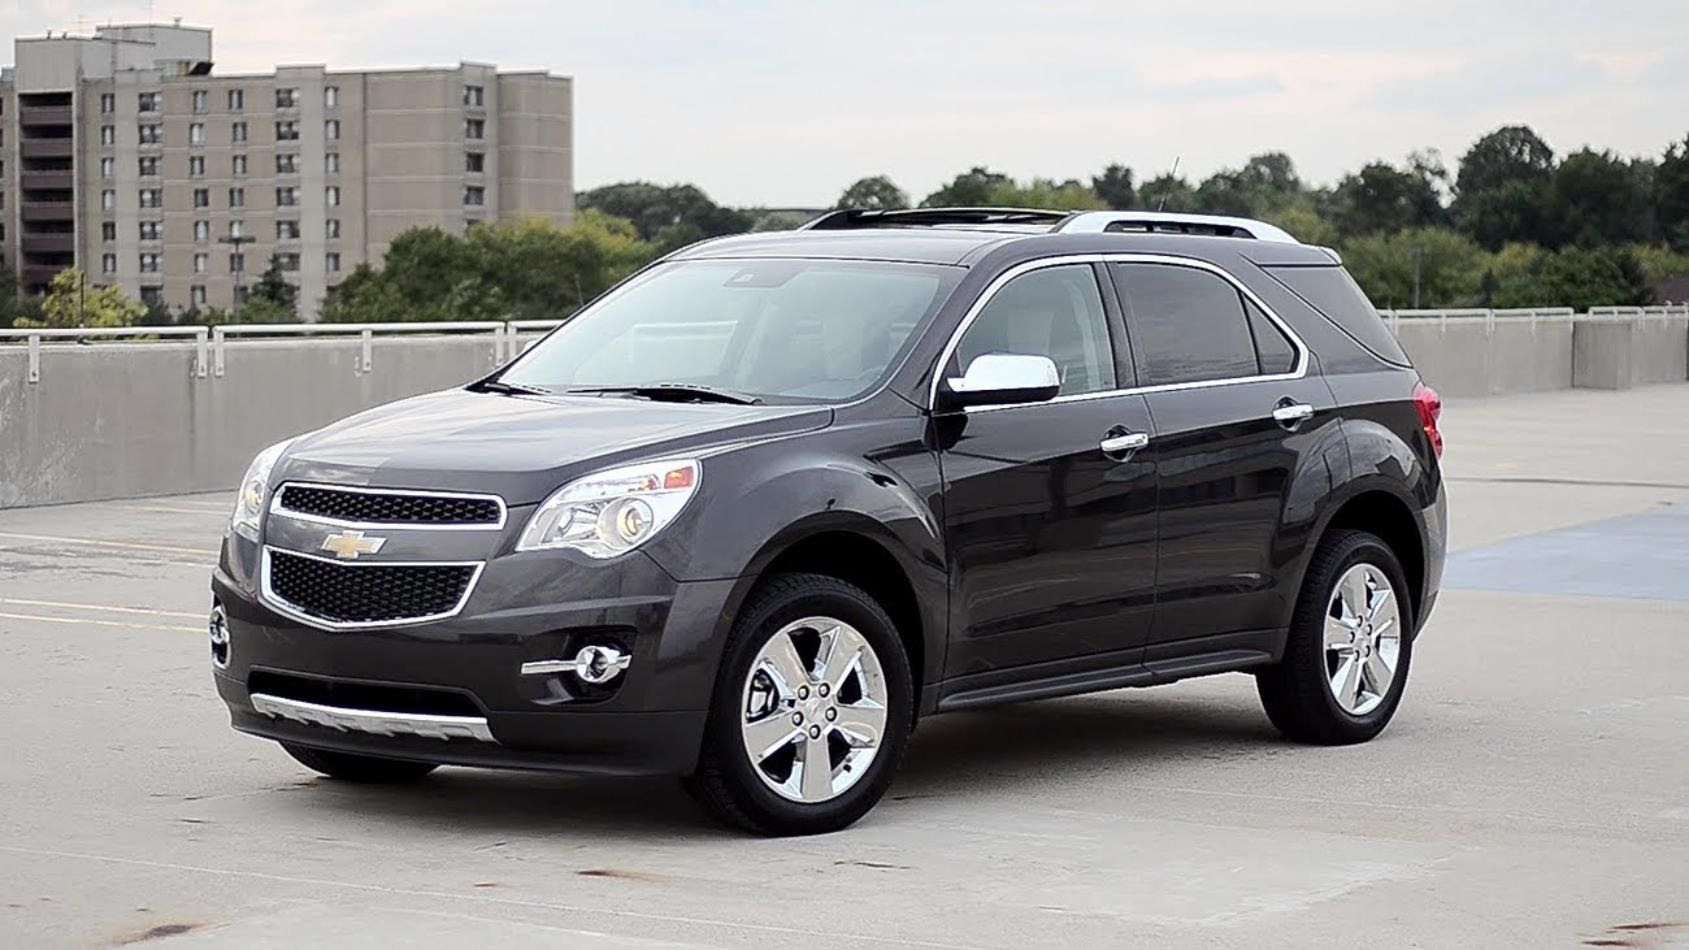 Equinox black chevy equinox : Best 25+ Chevrolet equinox ideas on Pinterest | Equinox chevy ...